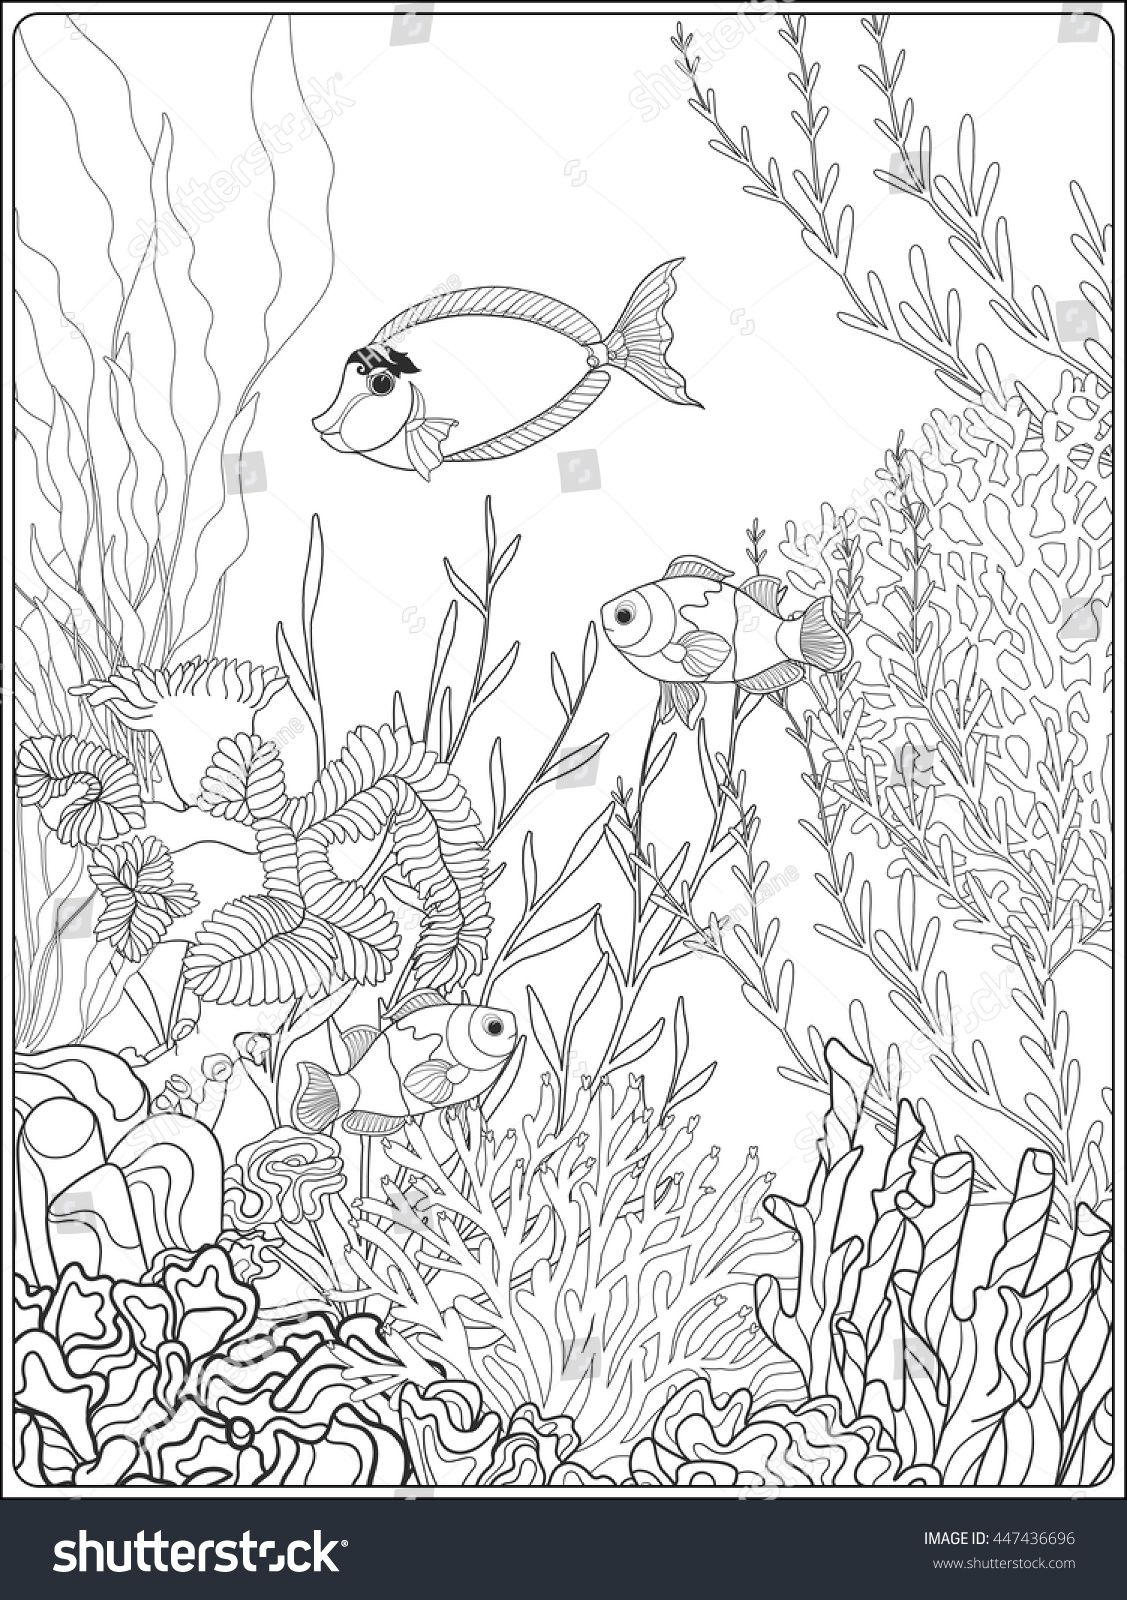 Pin Auf My Coloring Pages